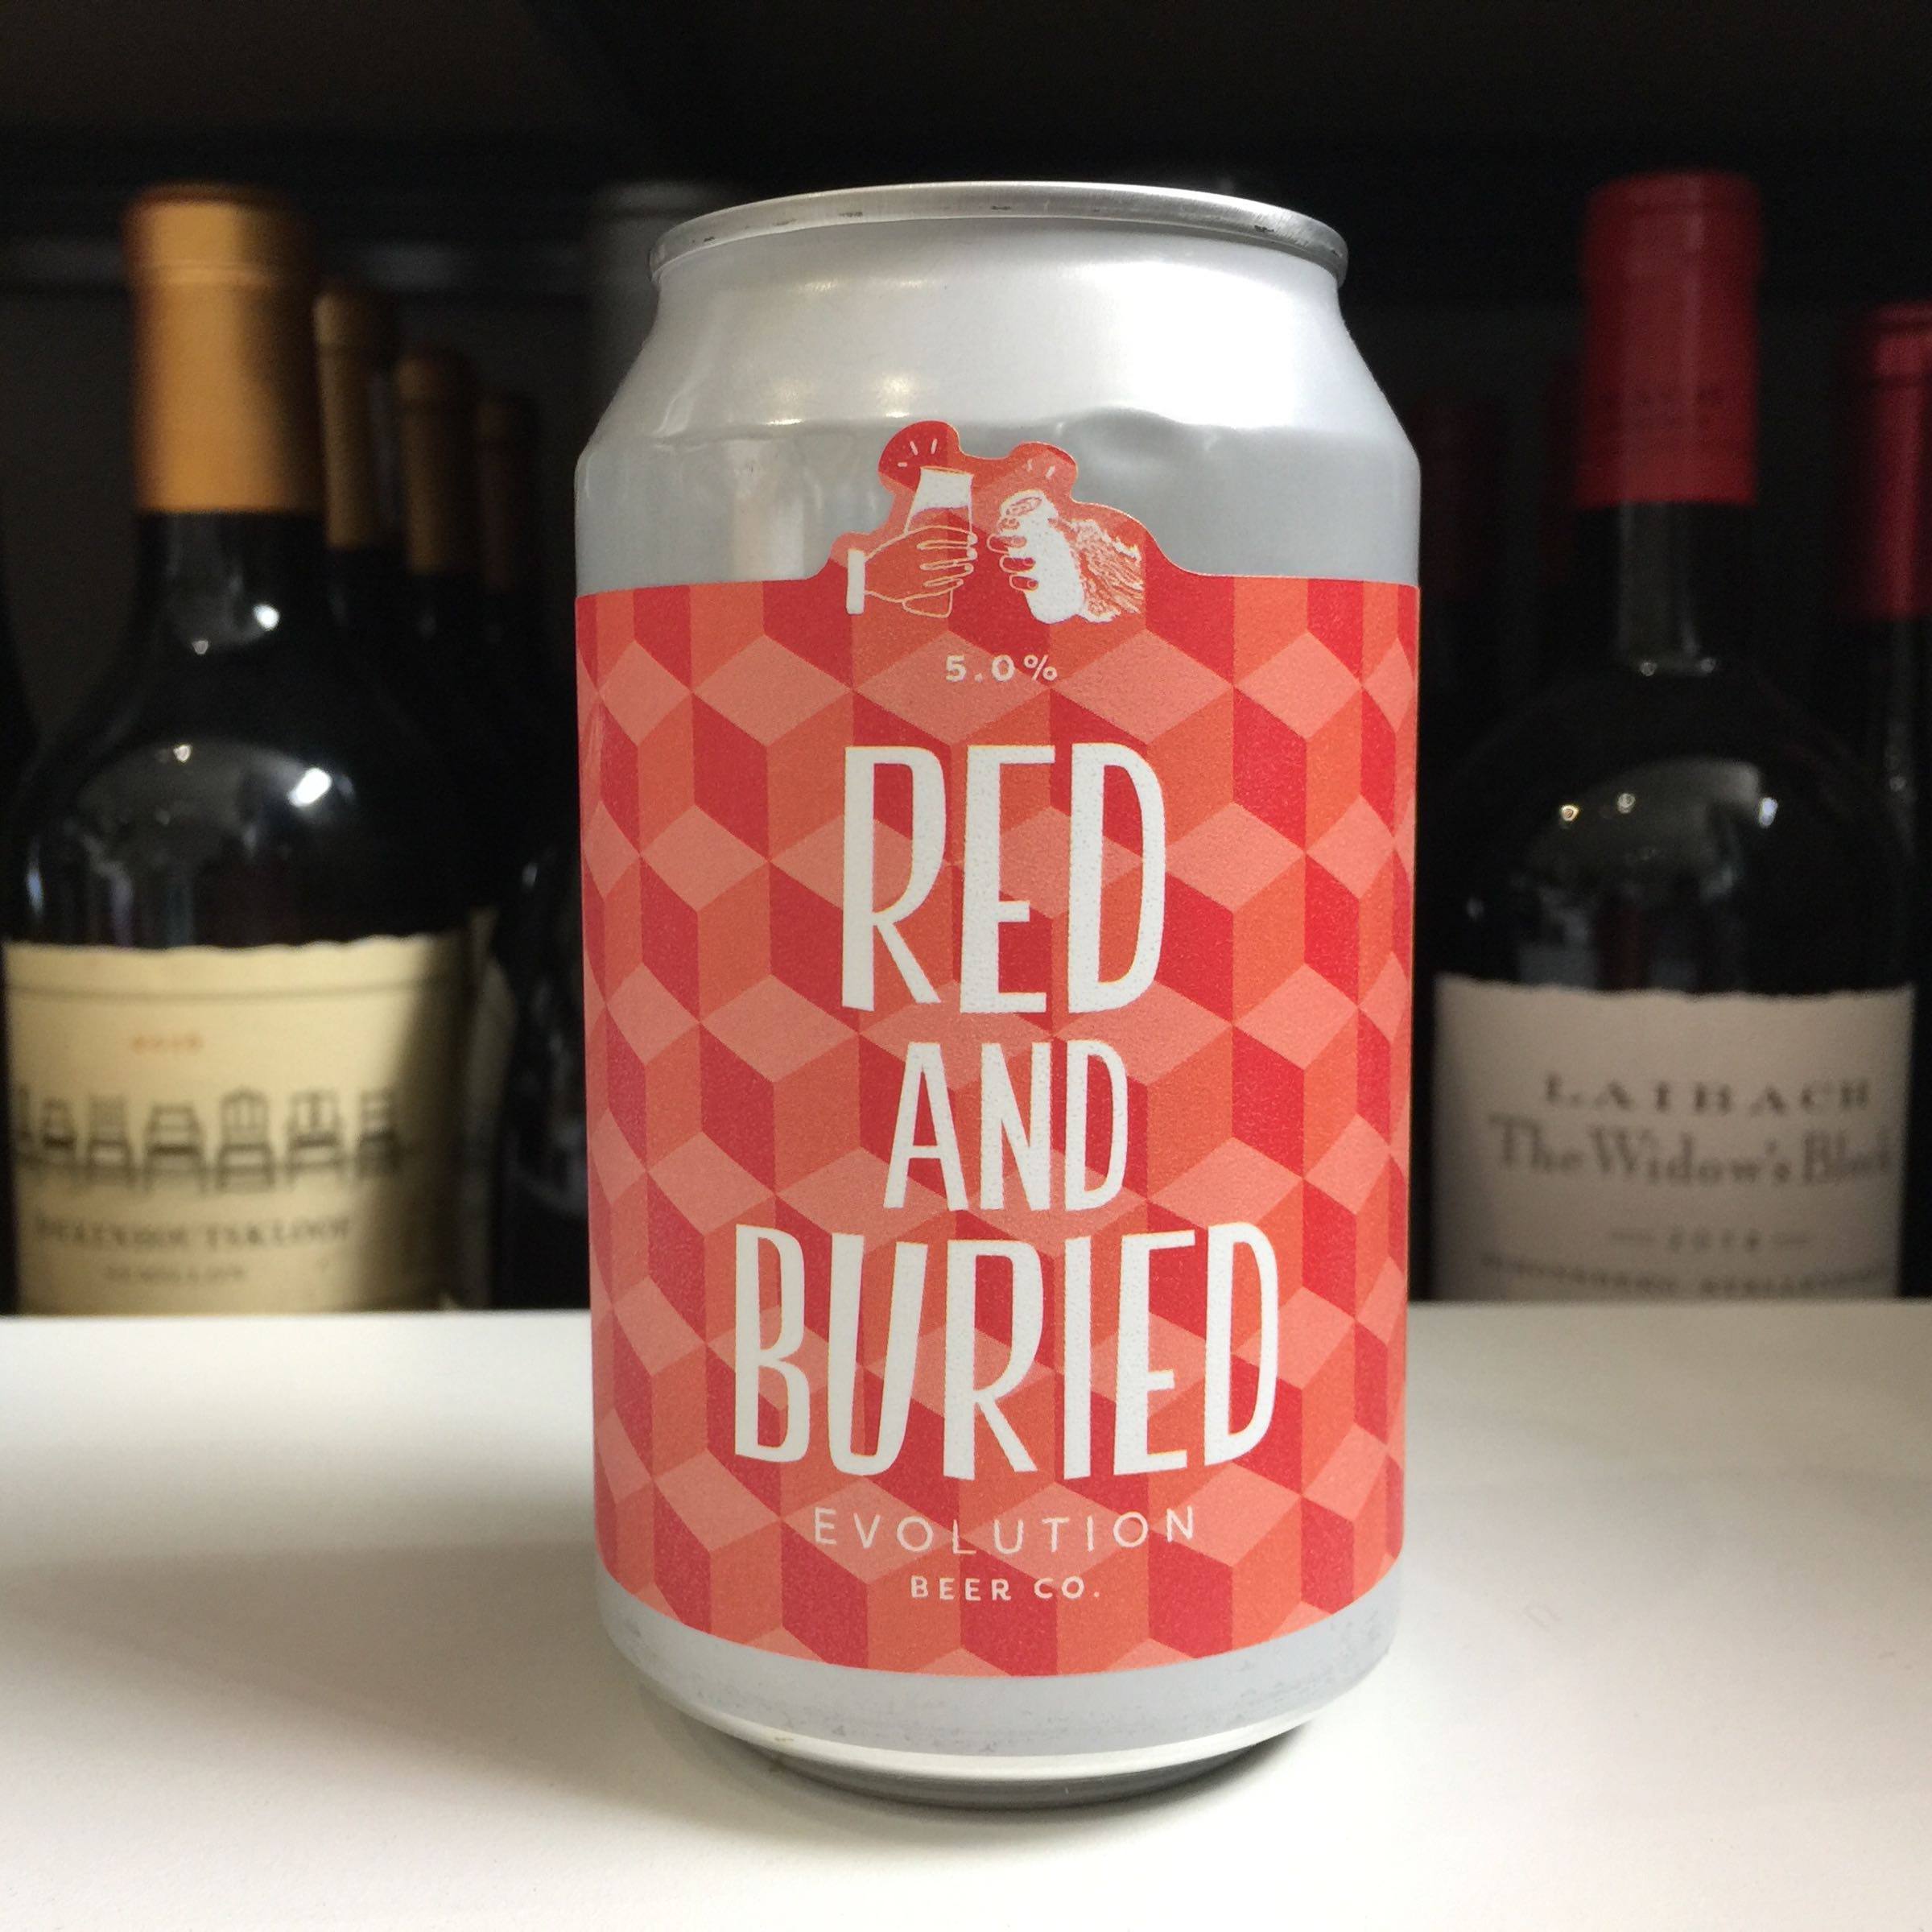 Evolution Beer 'Red and Buried' Red Ale 330ml 5% ABV